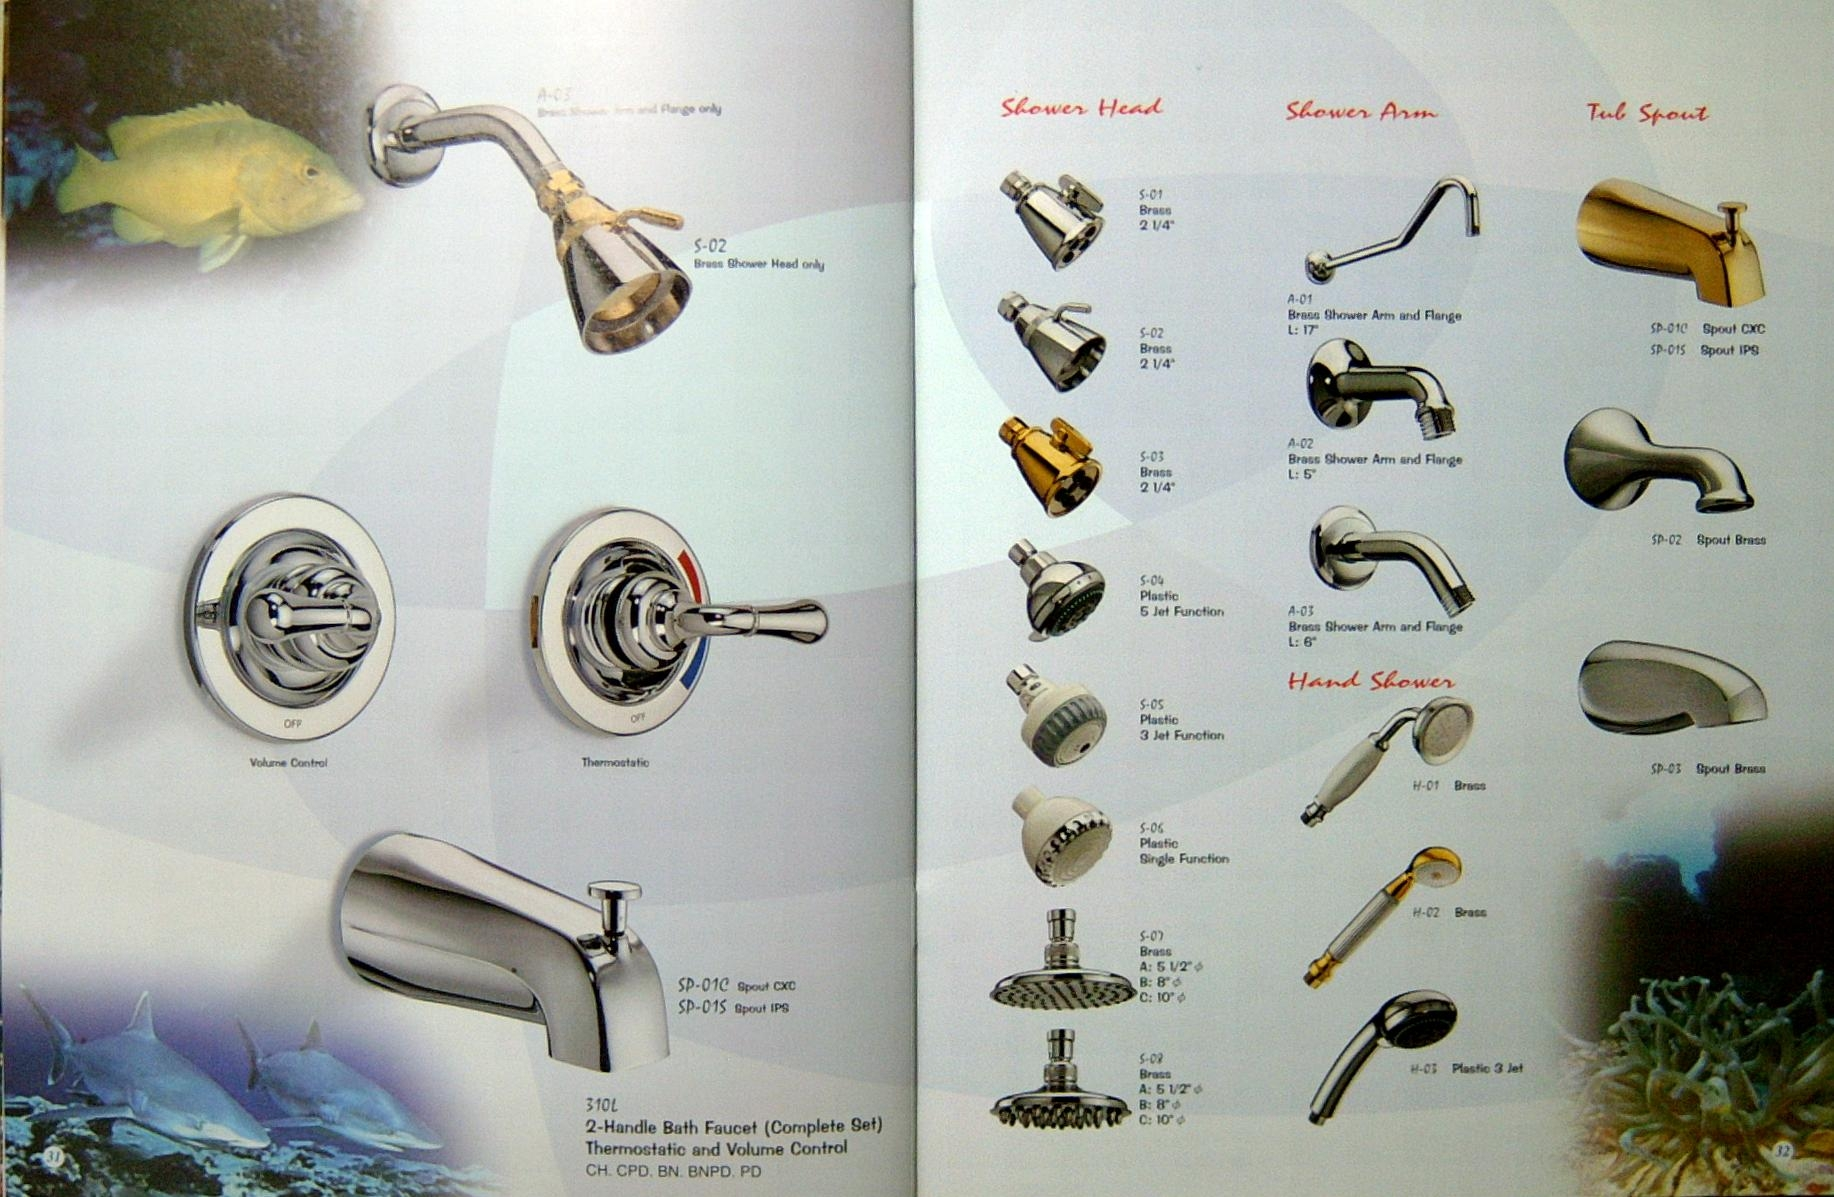 Ideas, types of bathroom faucet finishes types of bathroom faucet finishes different types of bathtub faucets 31 clean bathroom for types of 1834 x 1197  .